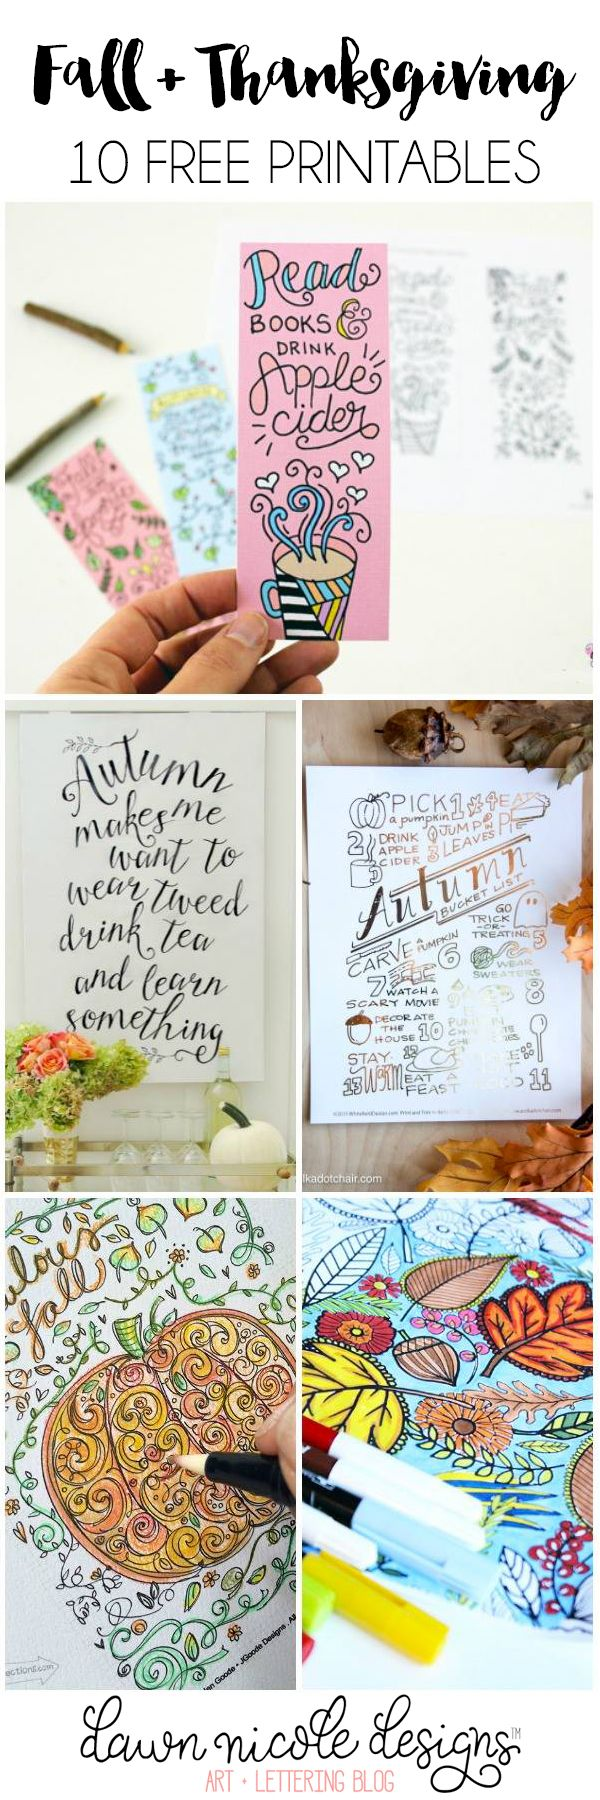 10 Free Fall & Thanksgiving Printables | bydawnnicole.com